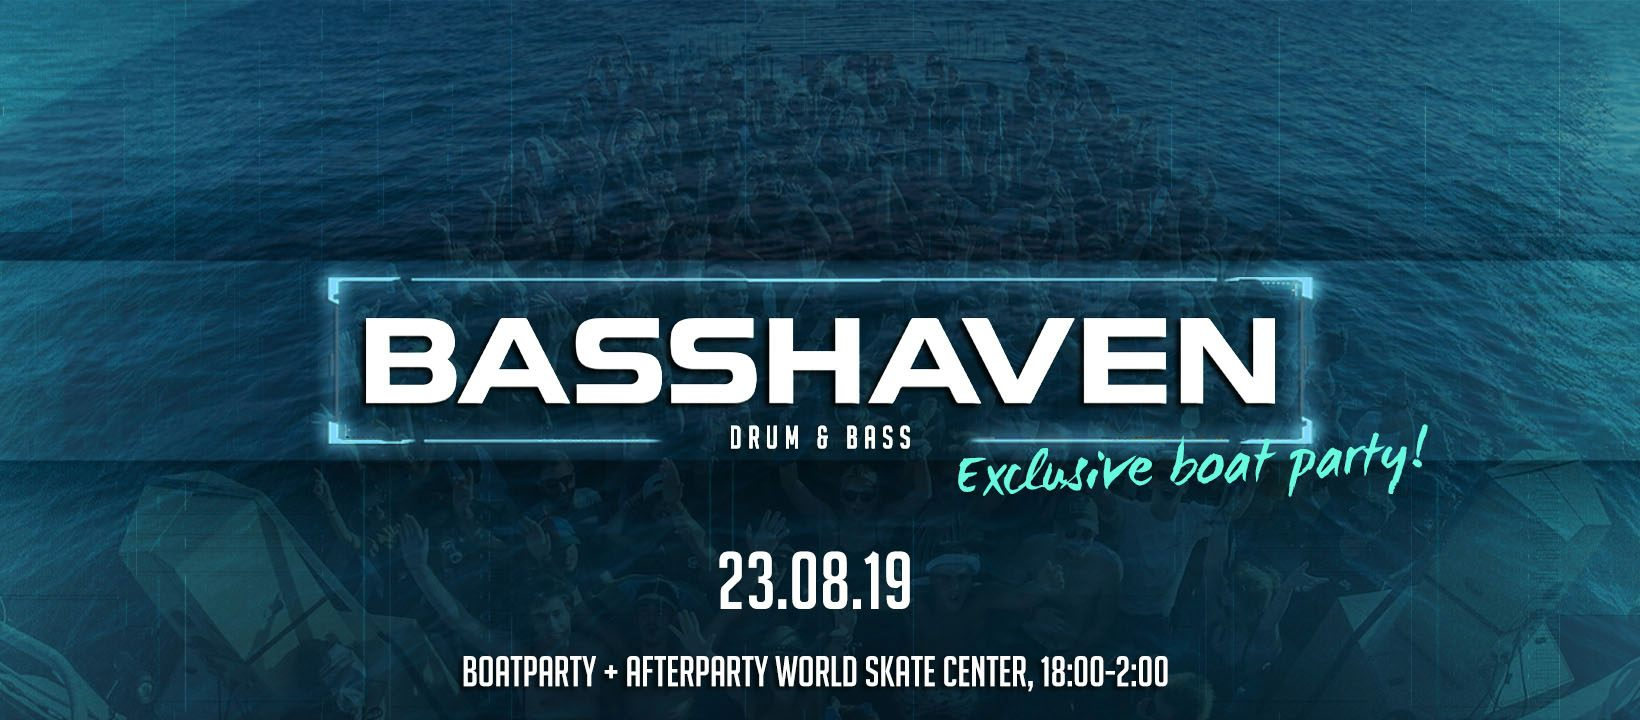 Basshaven#08 - Boat Party + Afterparty!